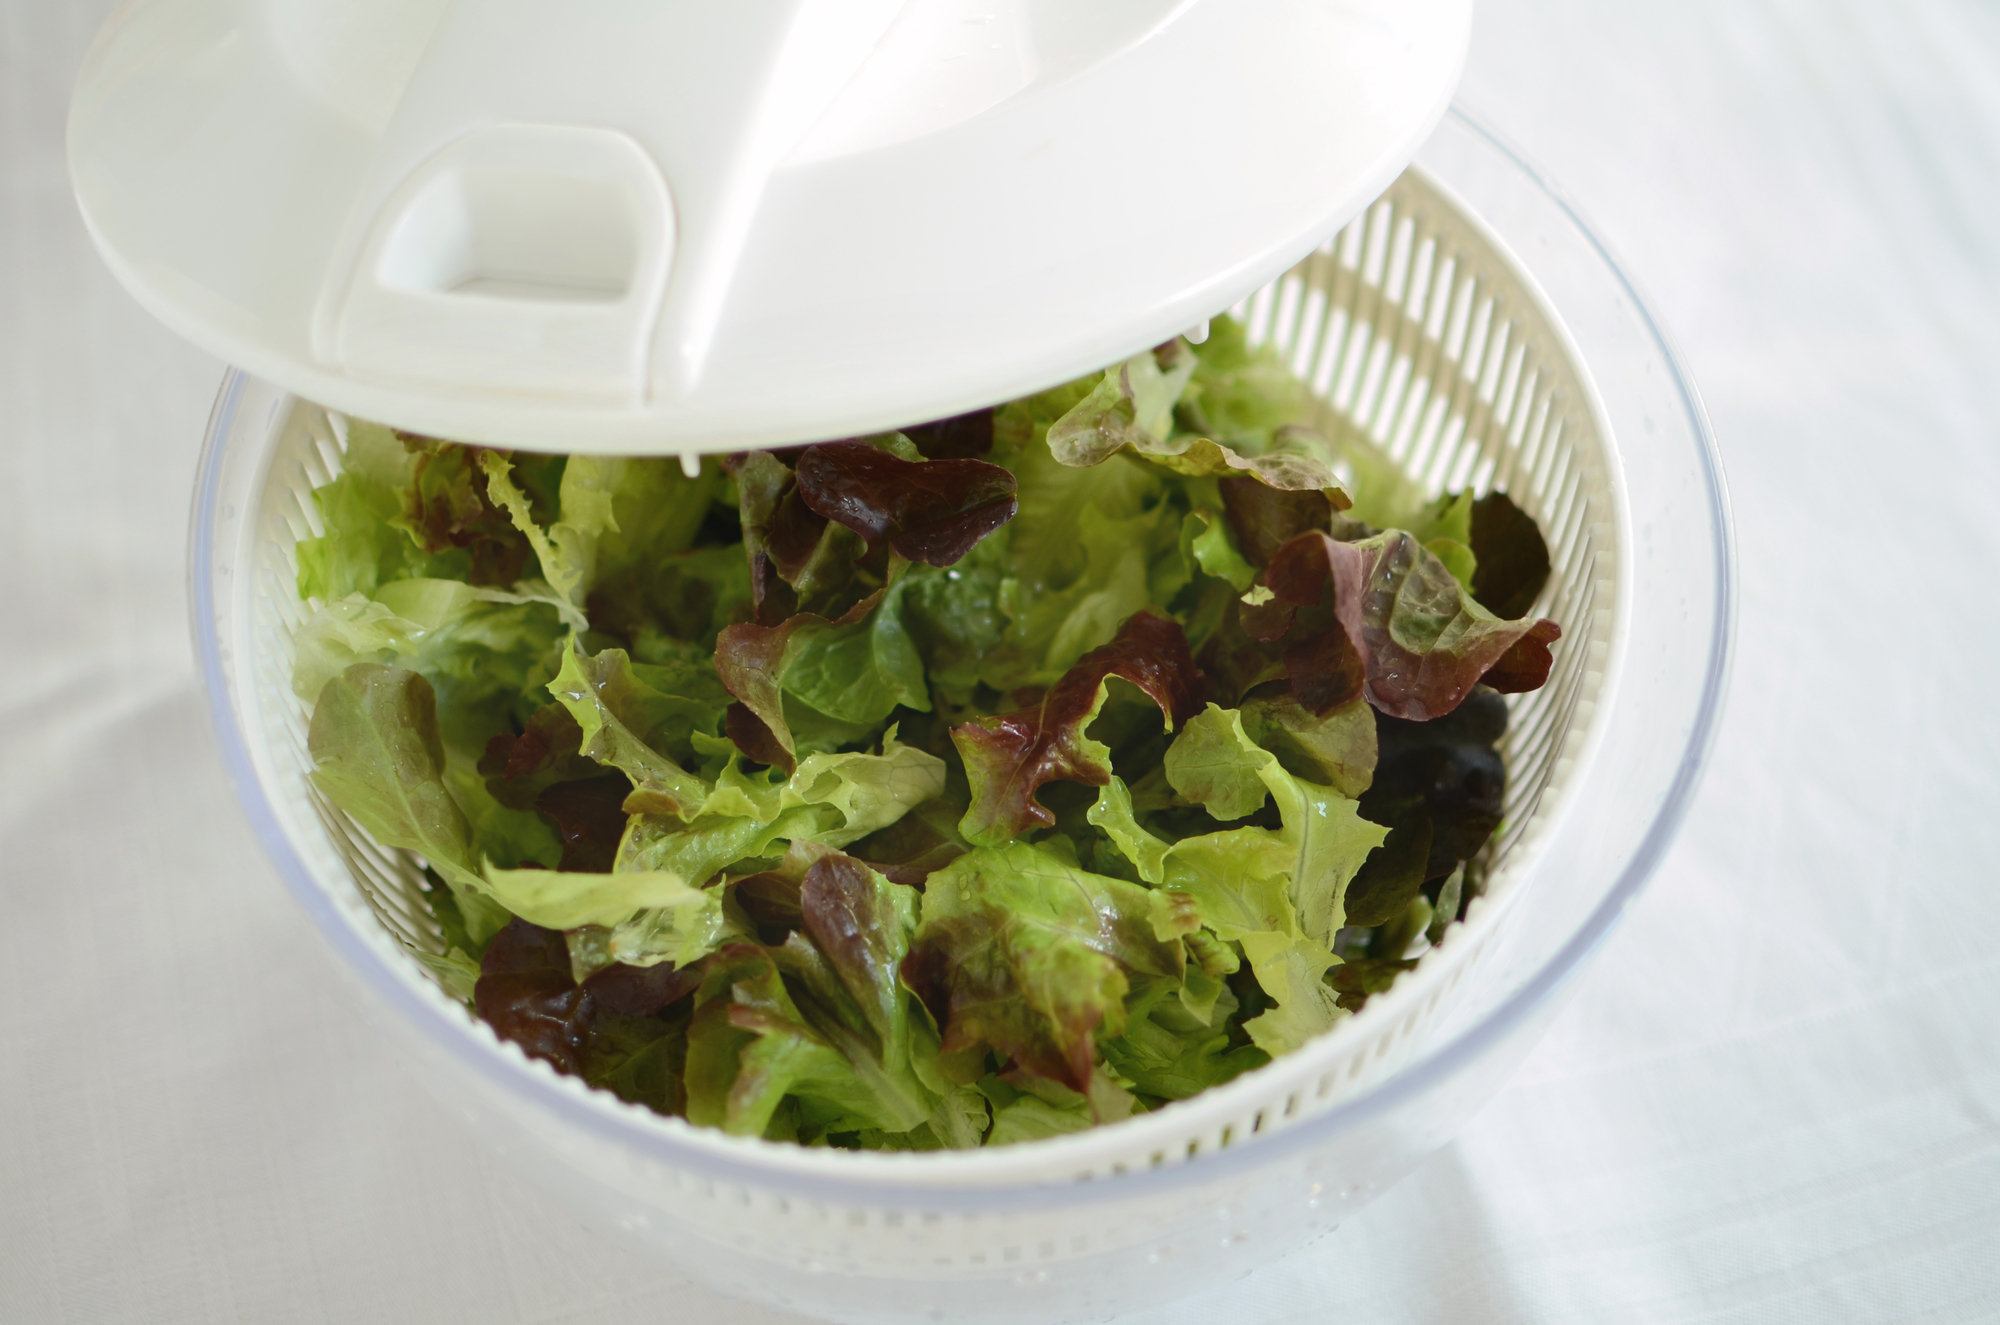 Salad Spinner for Removing Excess Moisture